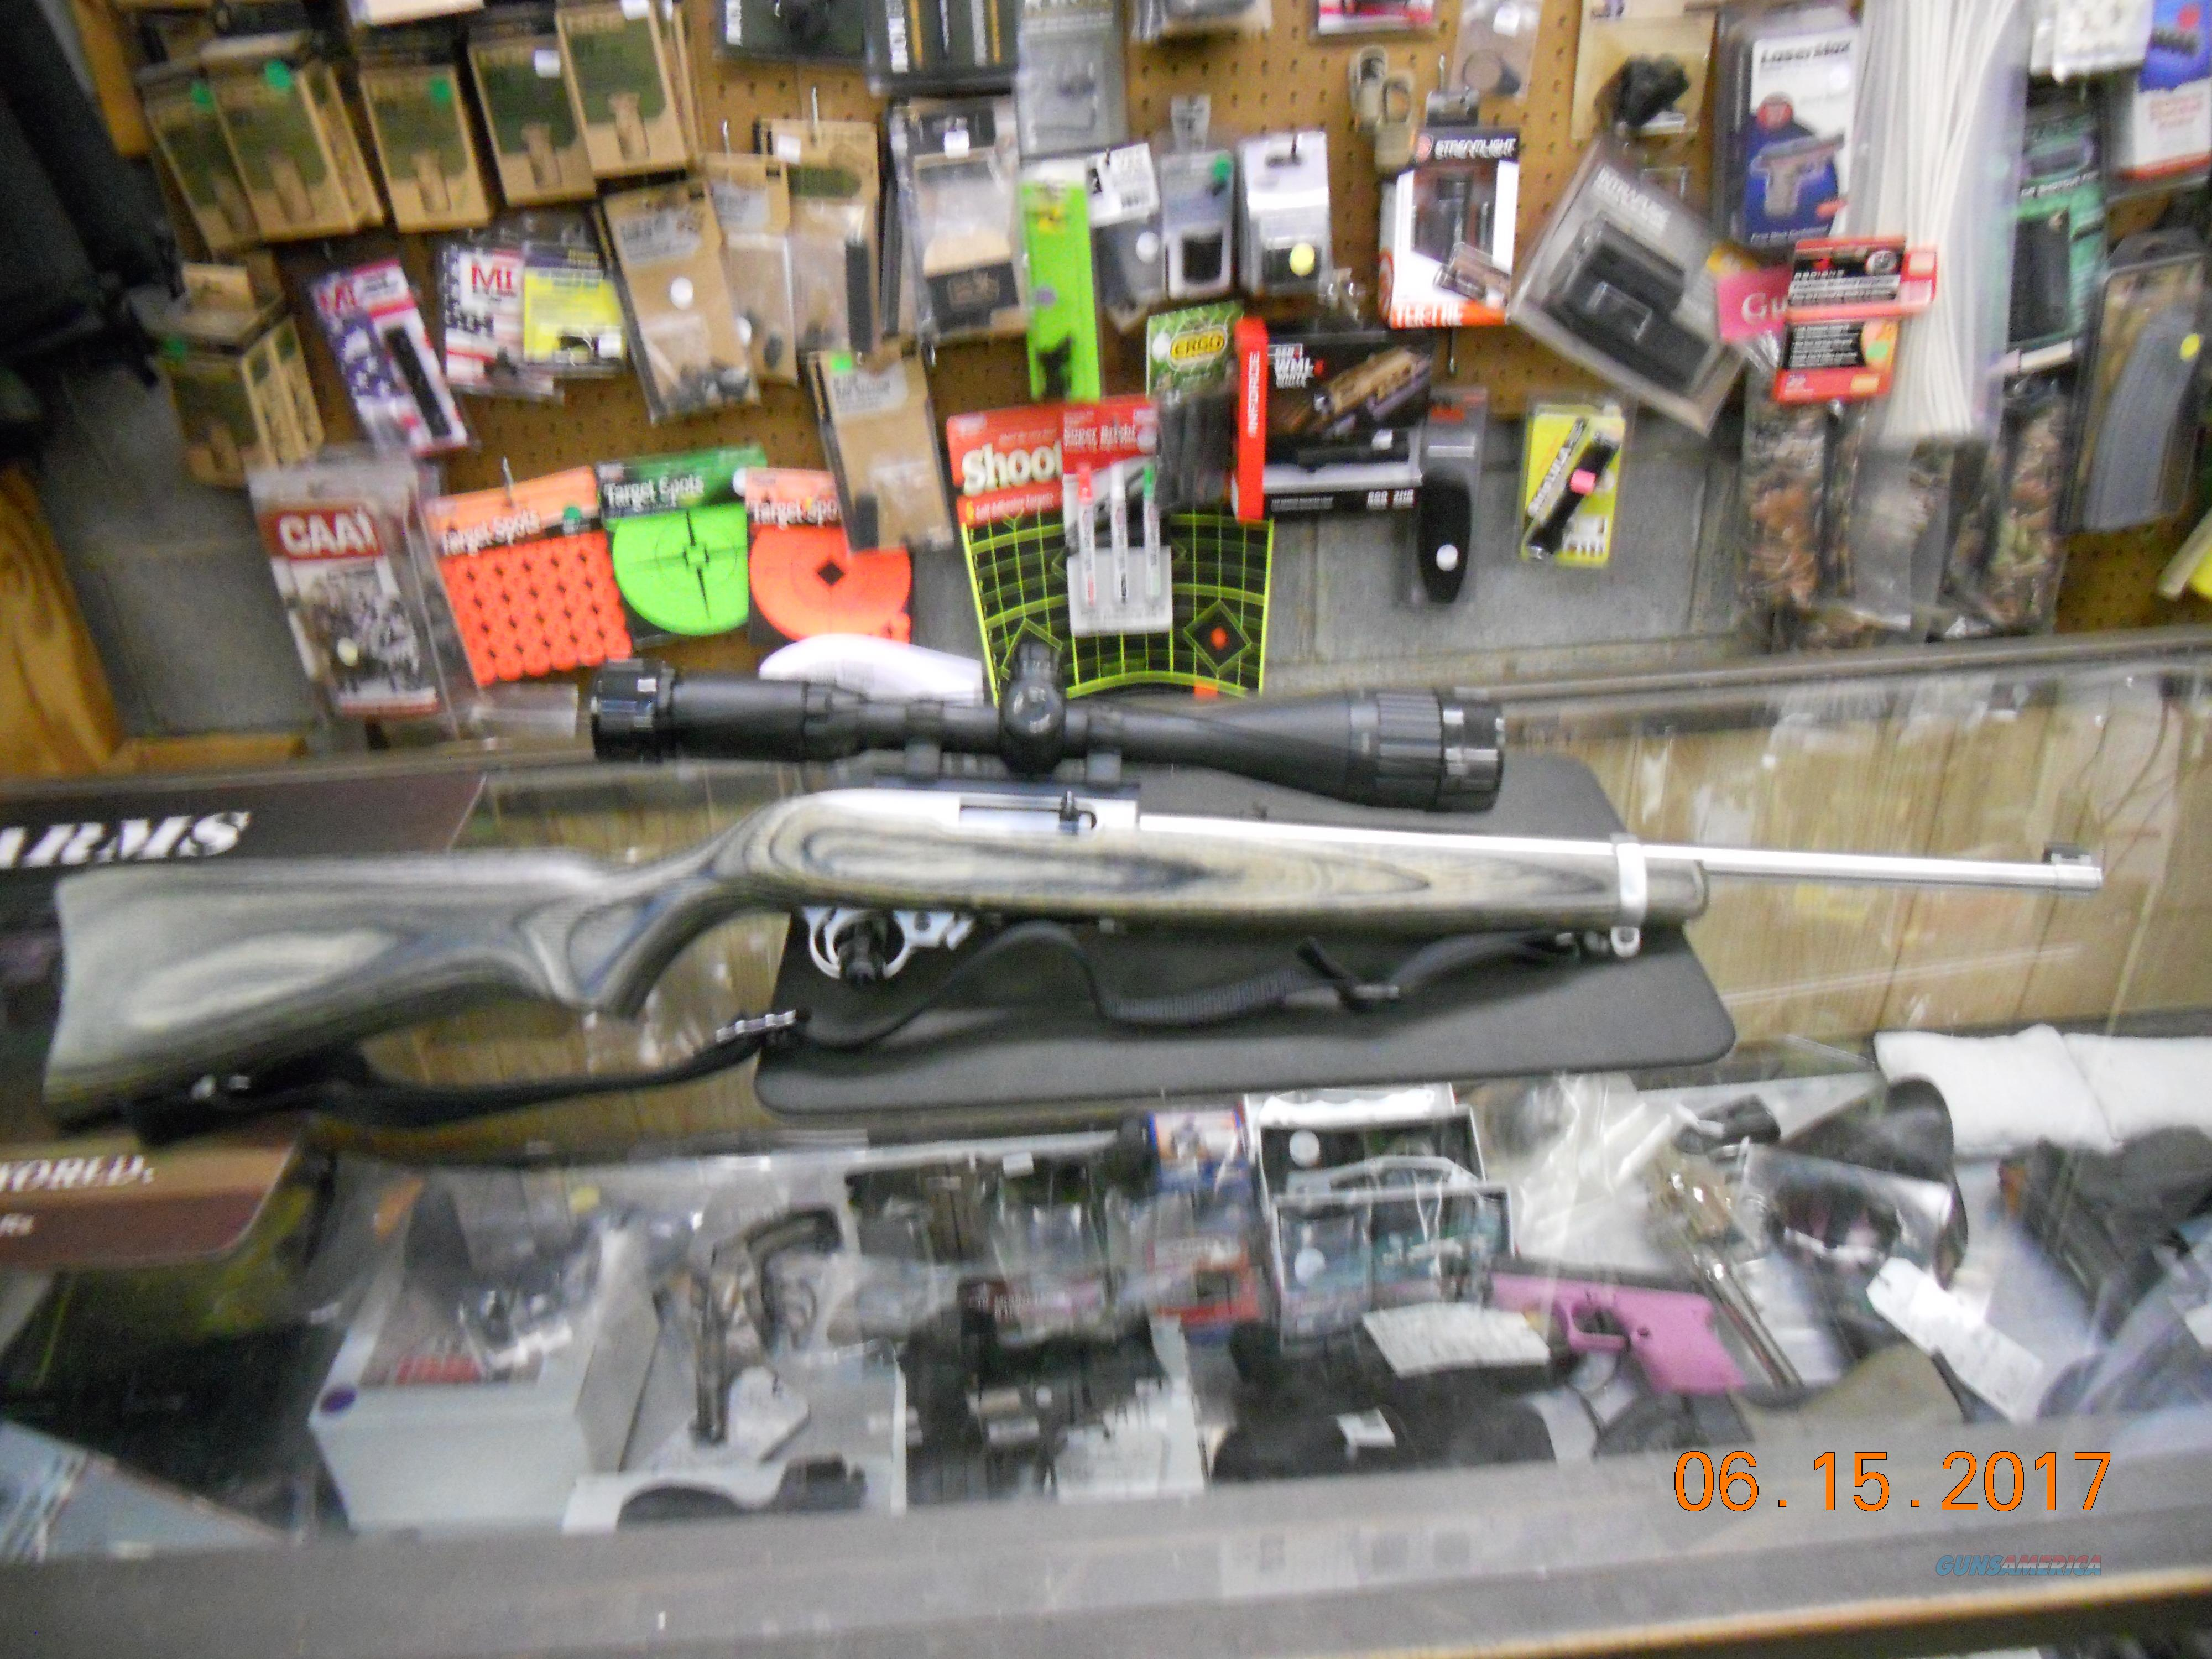 RUGER 10/22 SPORTER CARBINE 22LR SS BARREL,GREEN LAM STOCK  Guns > Rifles > Ruger Rifles > 10-22